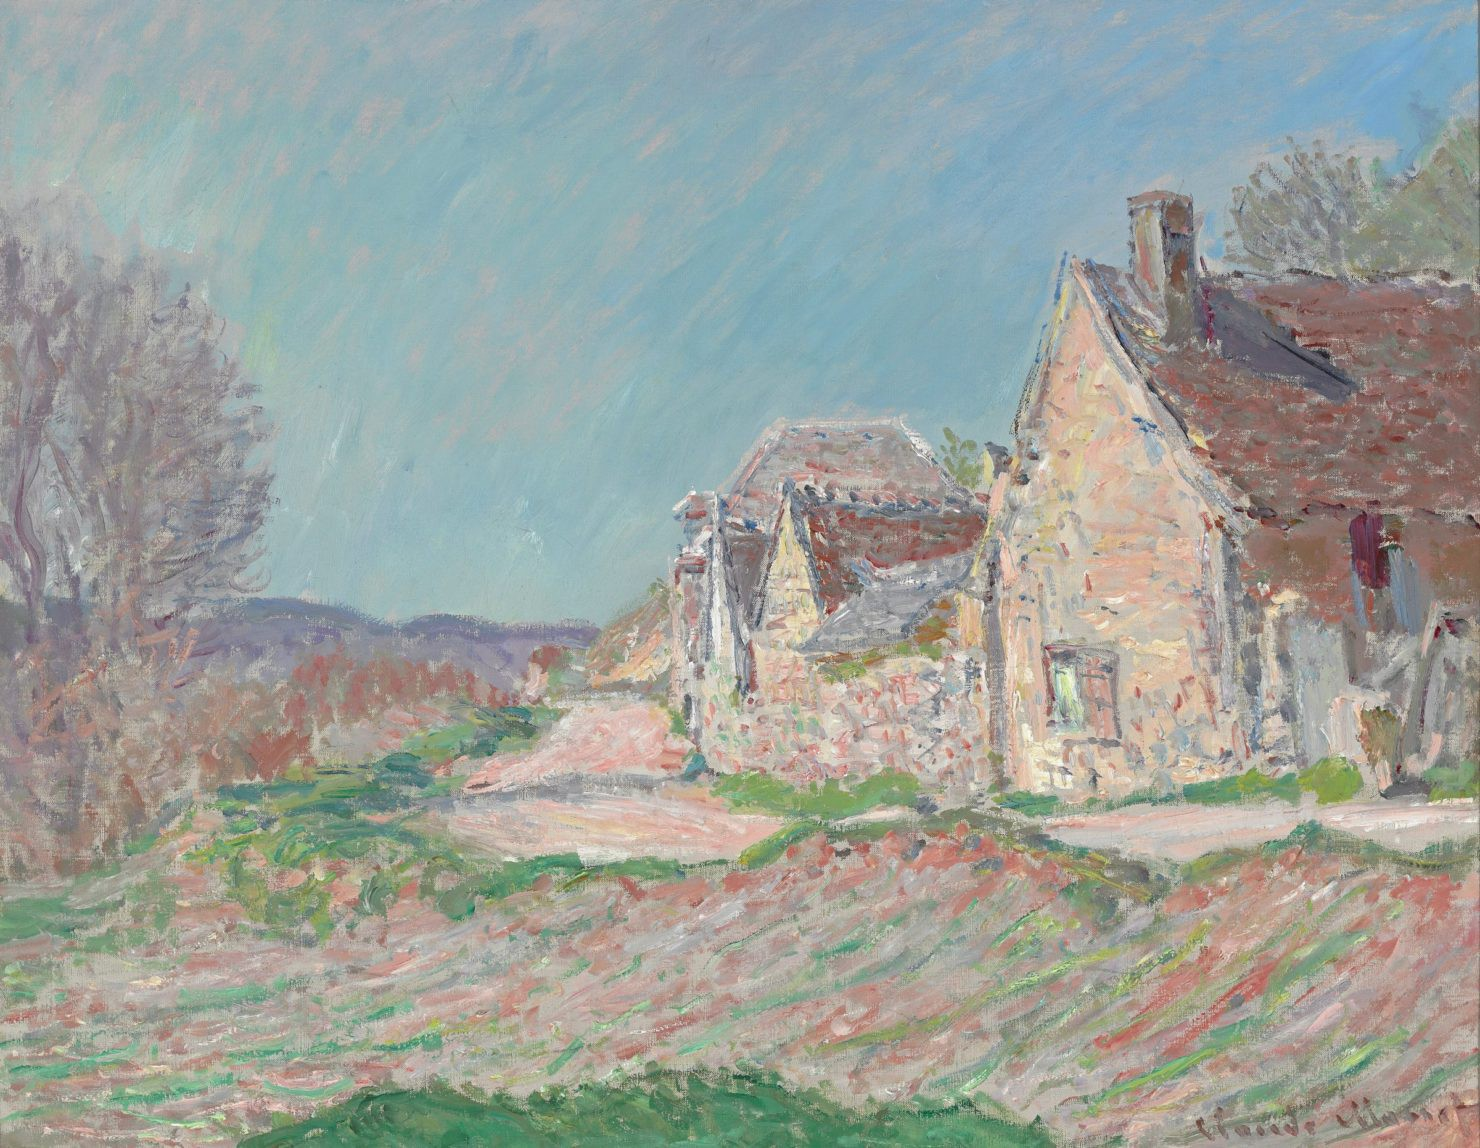 Impressionist landscape painting by Monet showing charming houses along a country road.